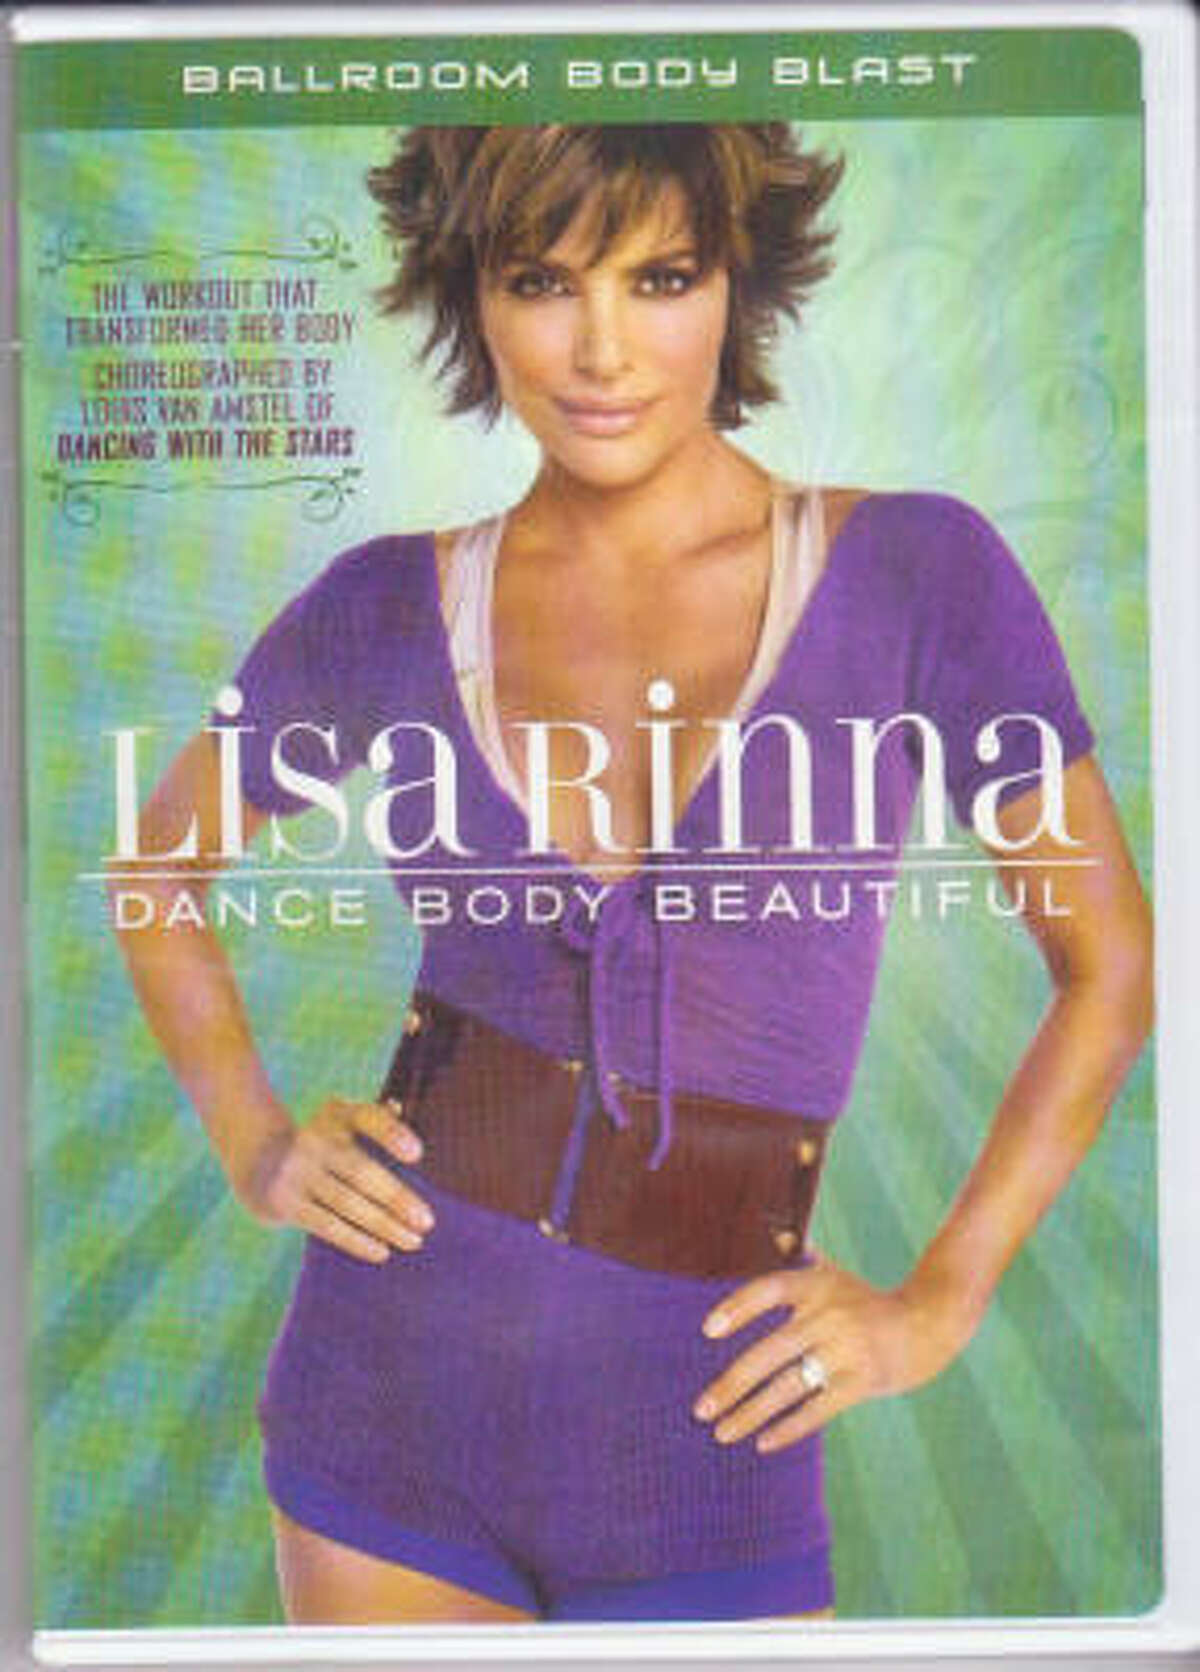 Workout DVDiva Mary Flood says Lisa Rinna's Dance Body Beautiful workout DVD is hard to follow and dance sequences are difficult to learn. She rates it a C+.